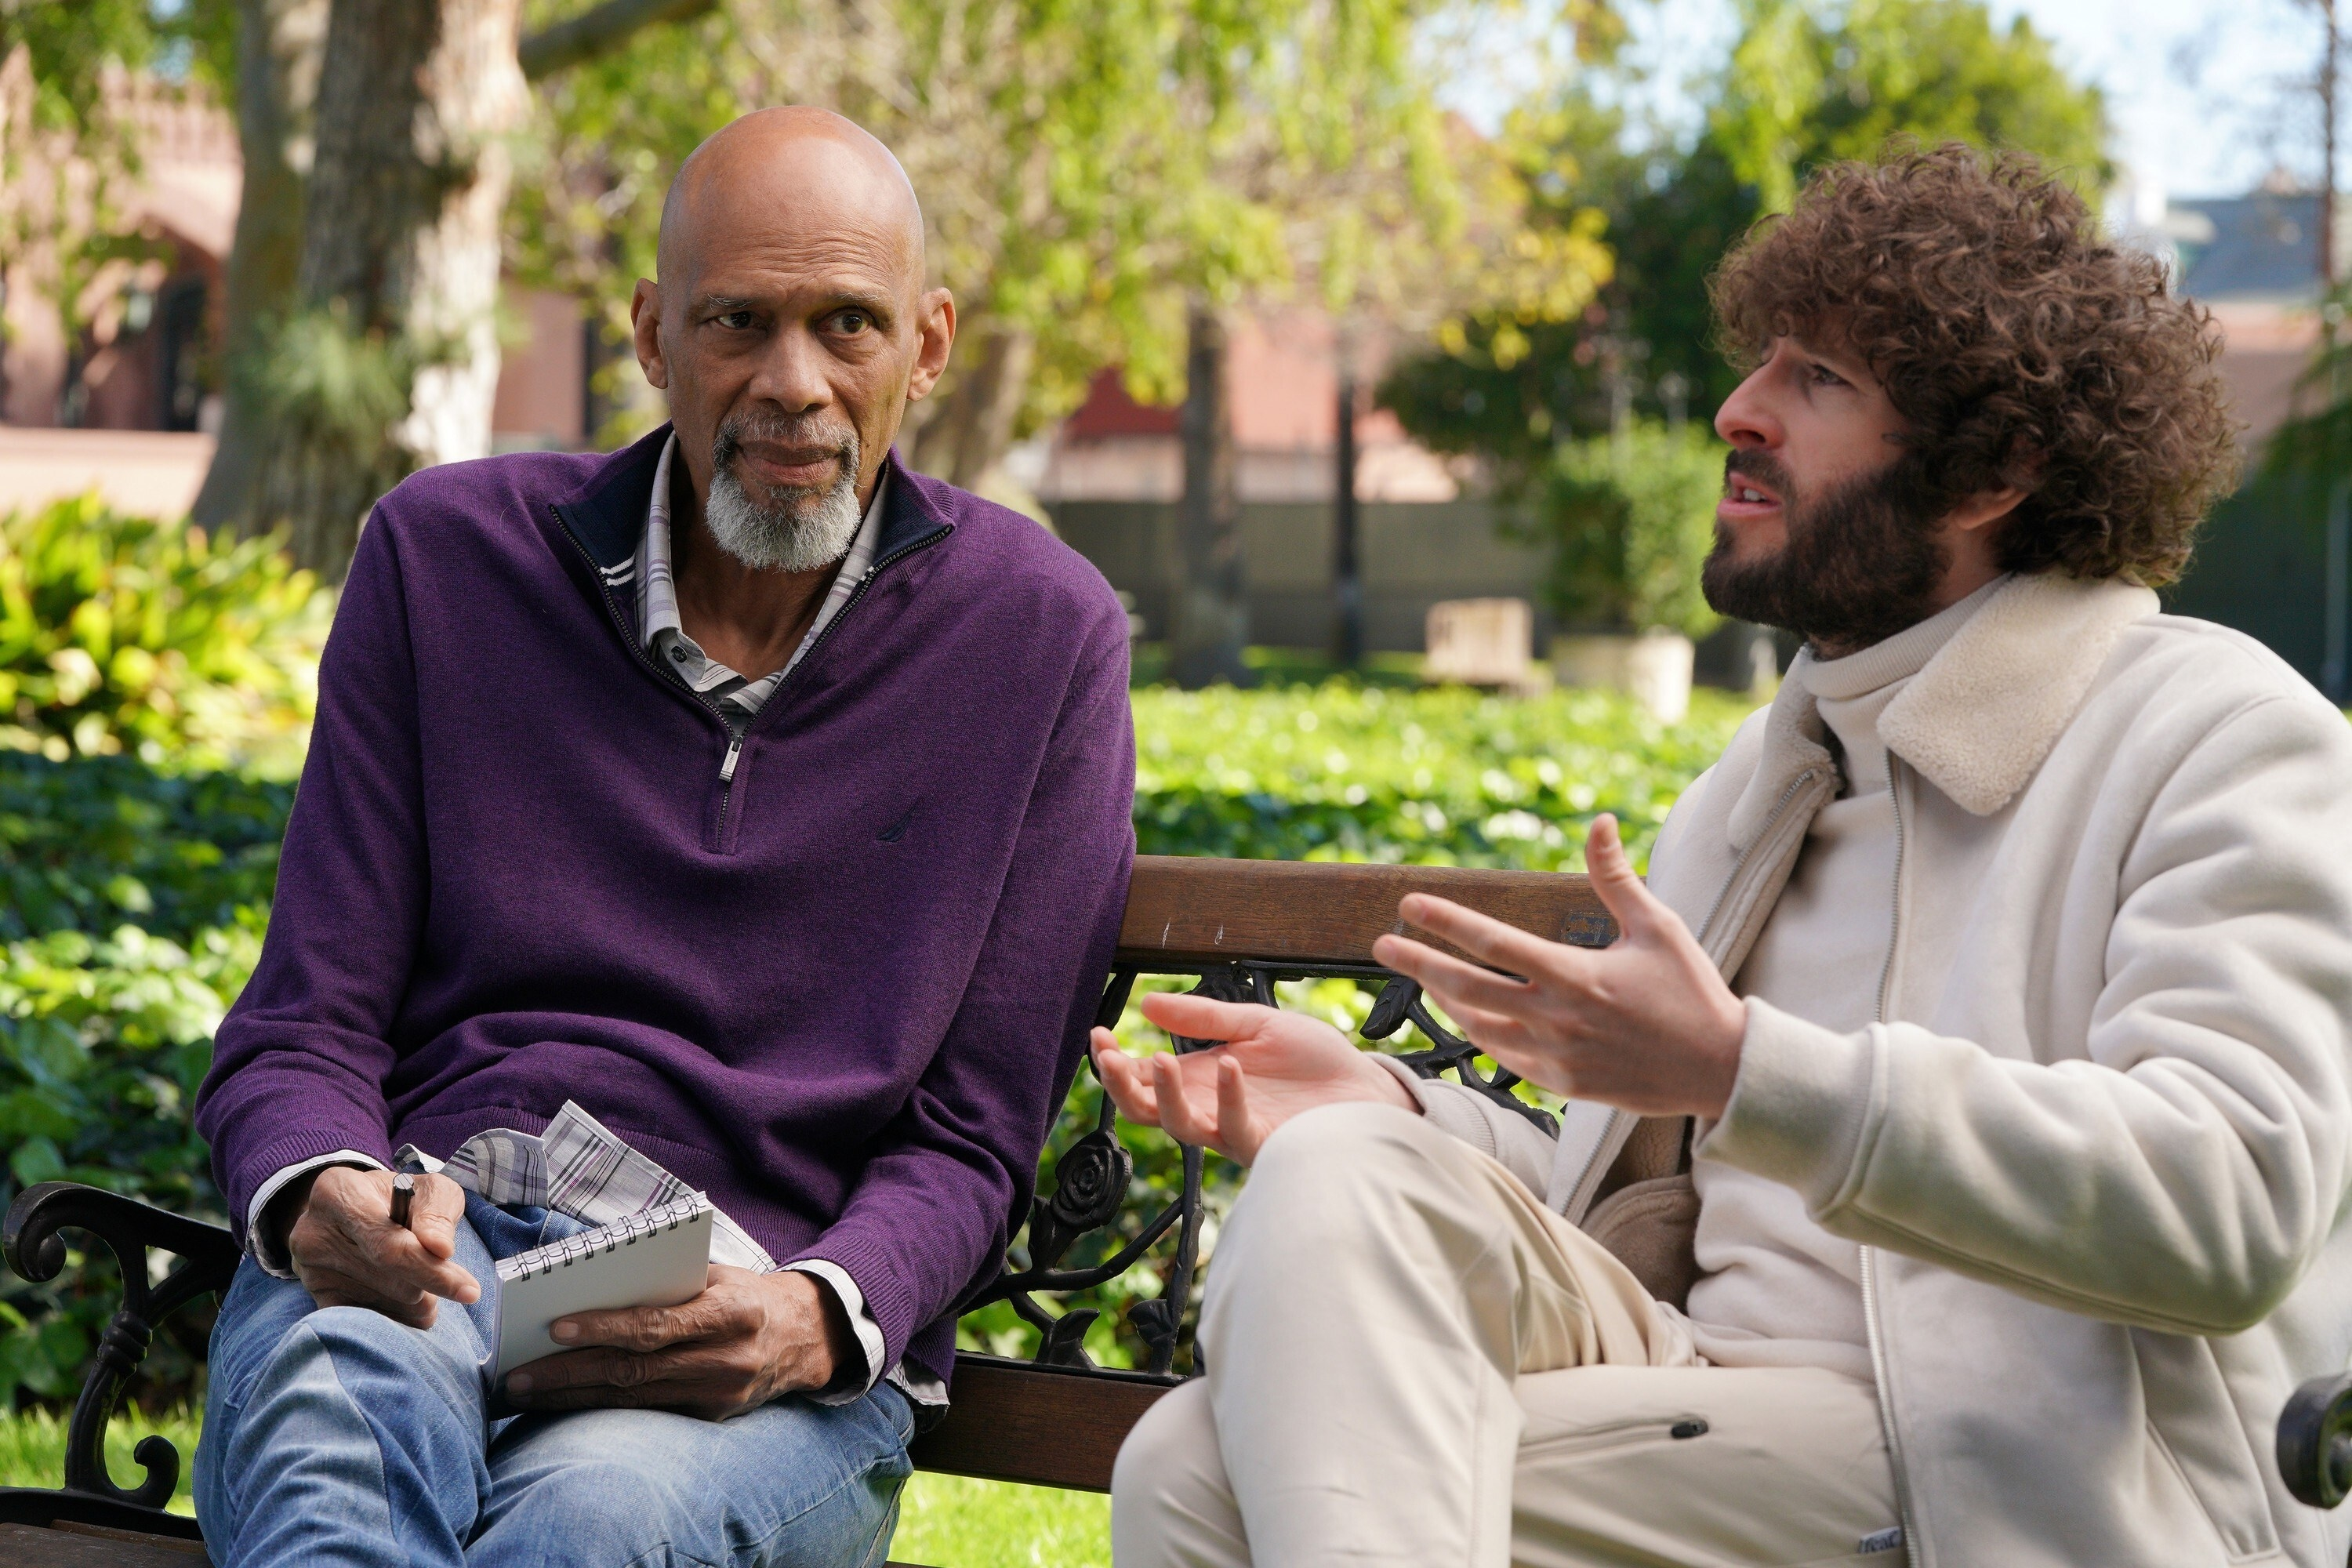 Kareem Abdul-Jabbar in sweater and jeans with notepad sitting with Dave in sweatsuit on a bench outside